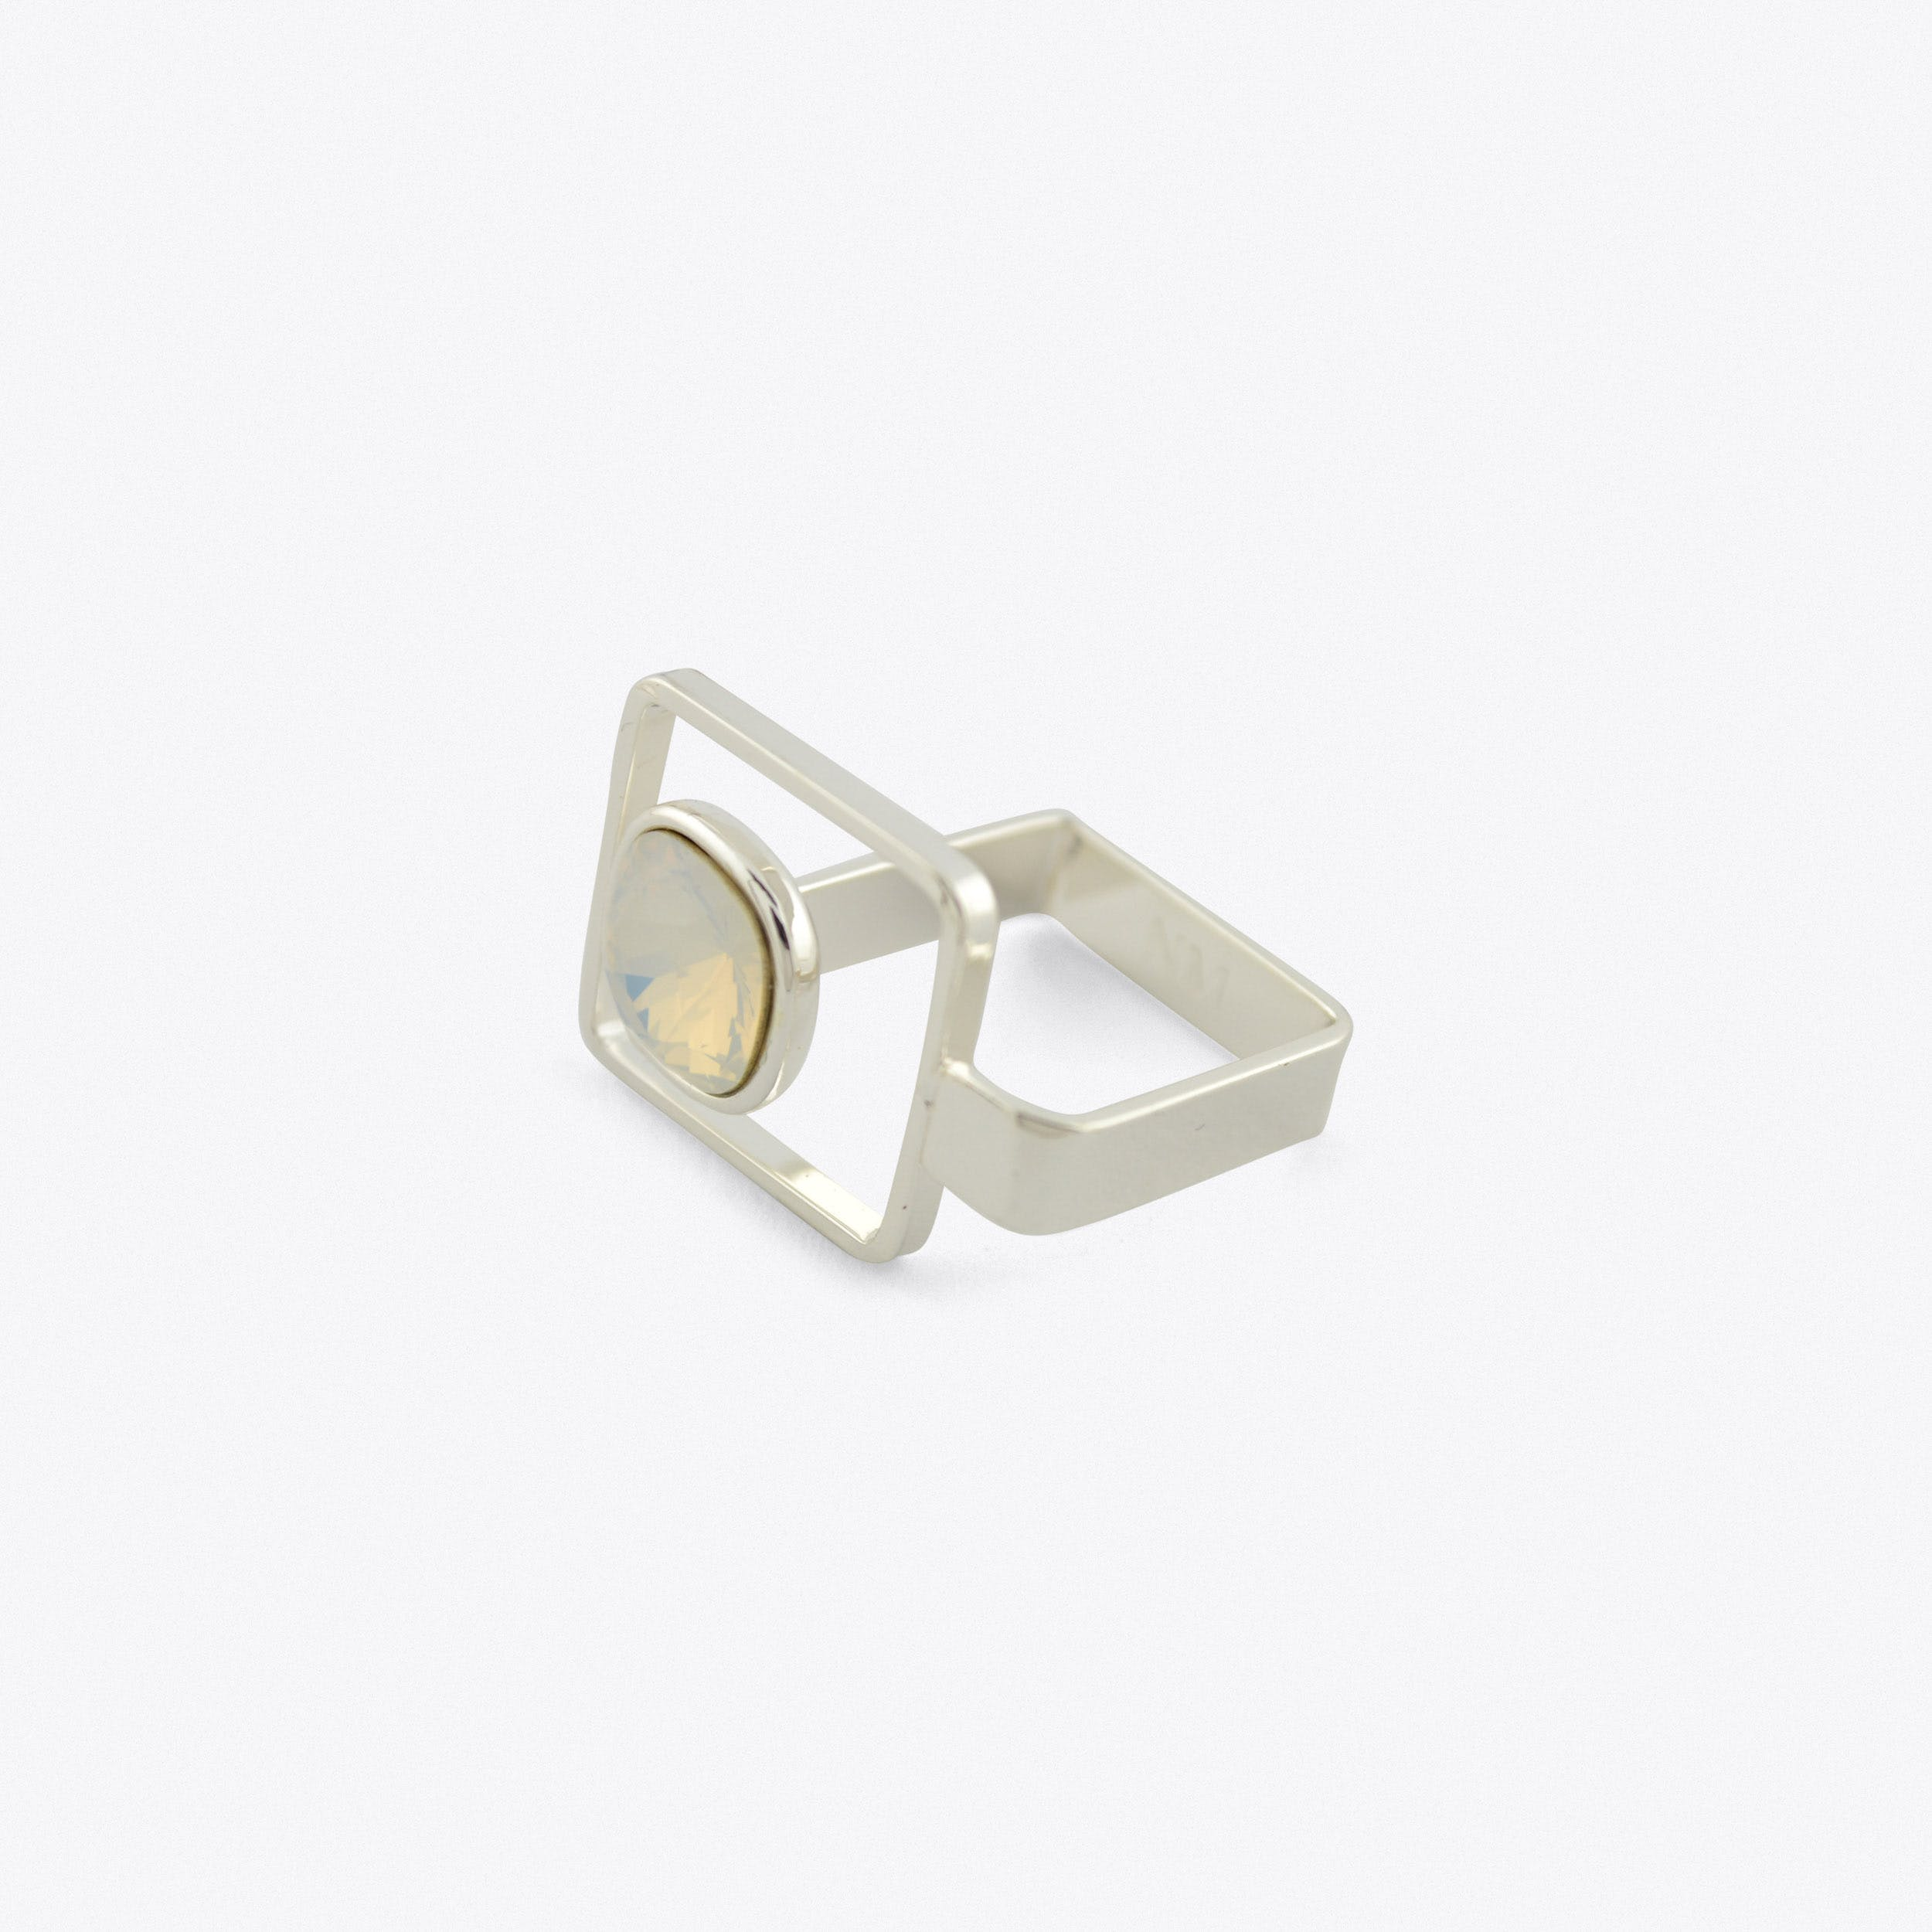 Square Frame Ring In Silver With White Stone